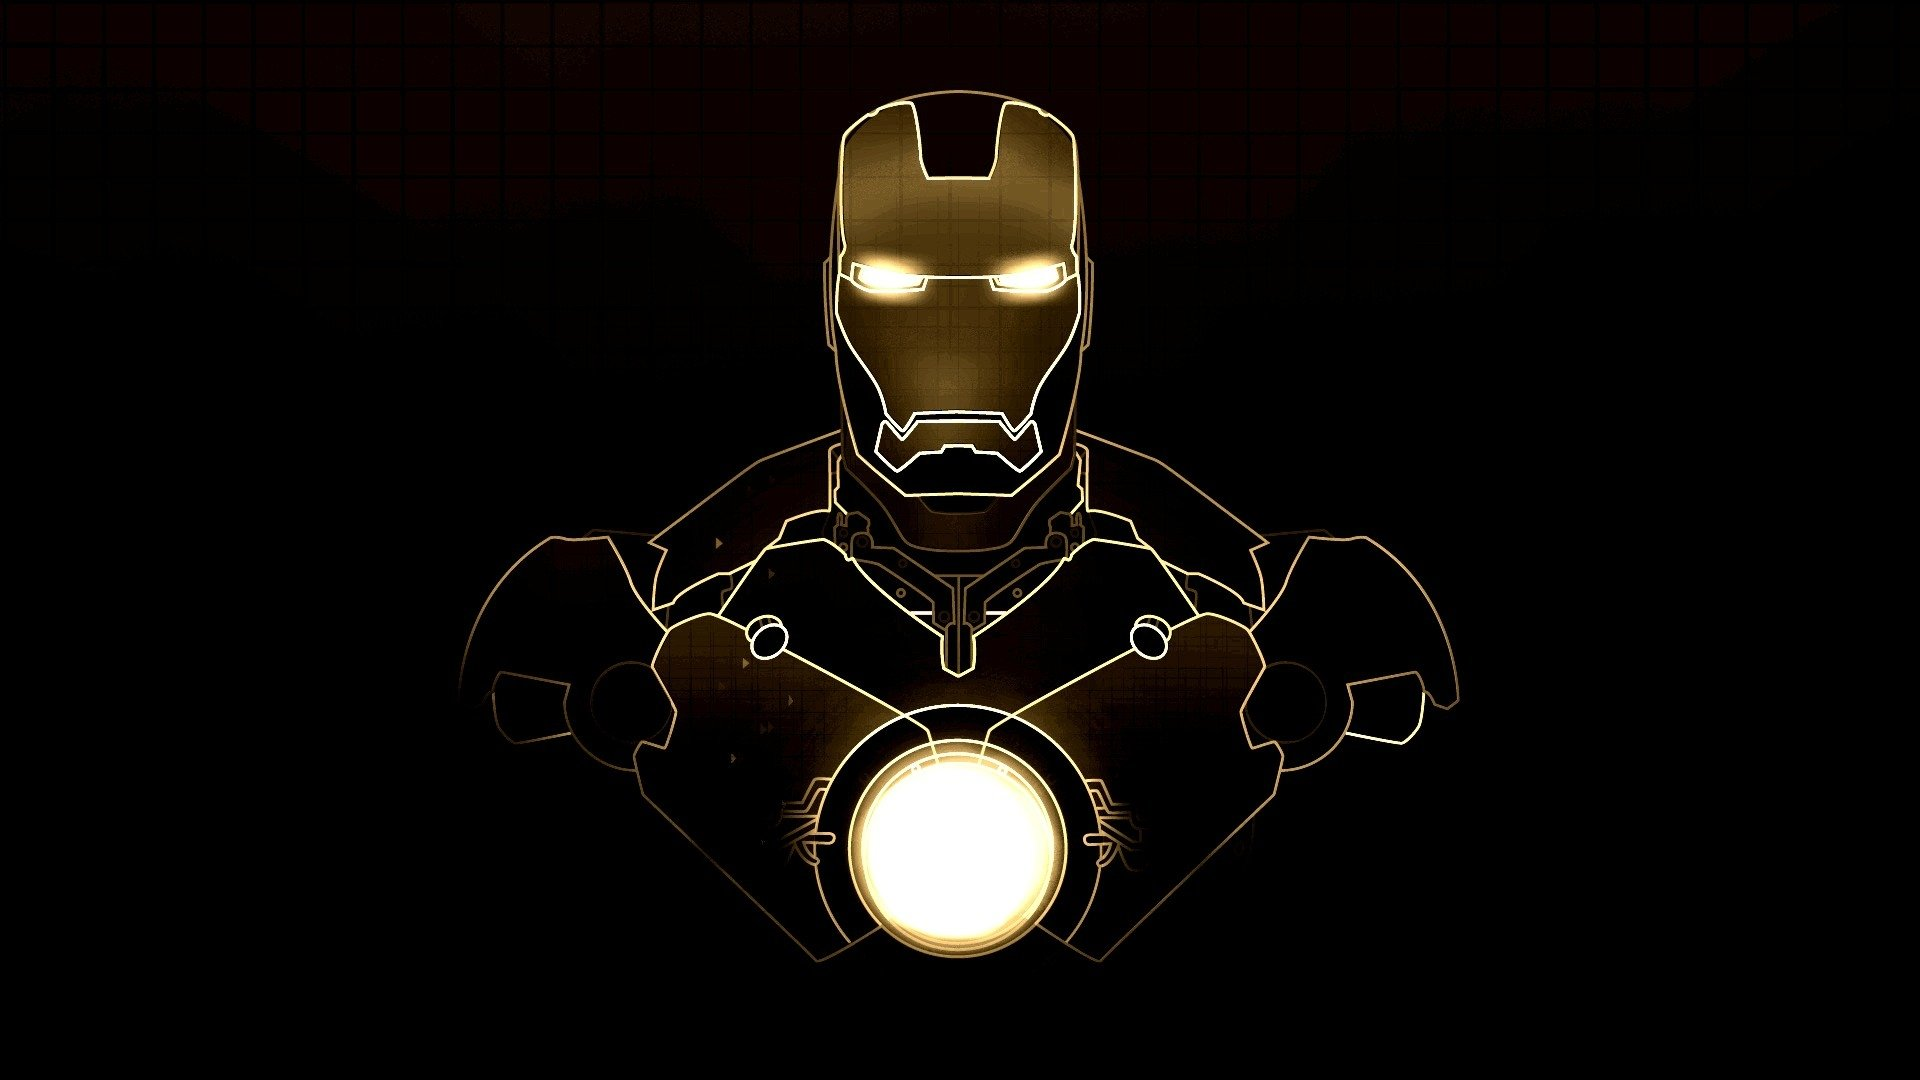 167 iron man hd wallpapers background images wallpaper - Iron man wallpaper anime ...